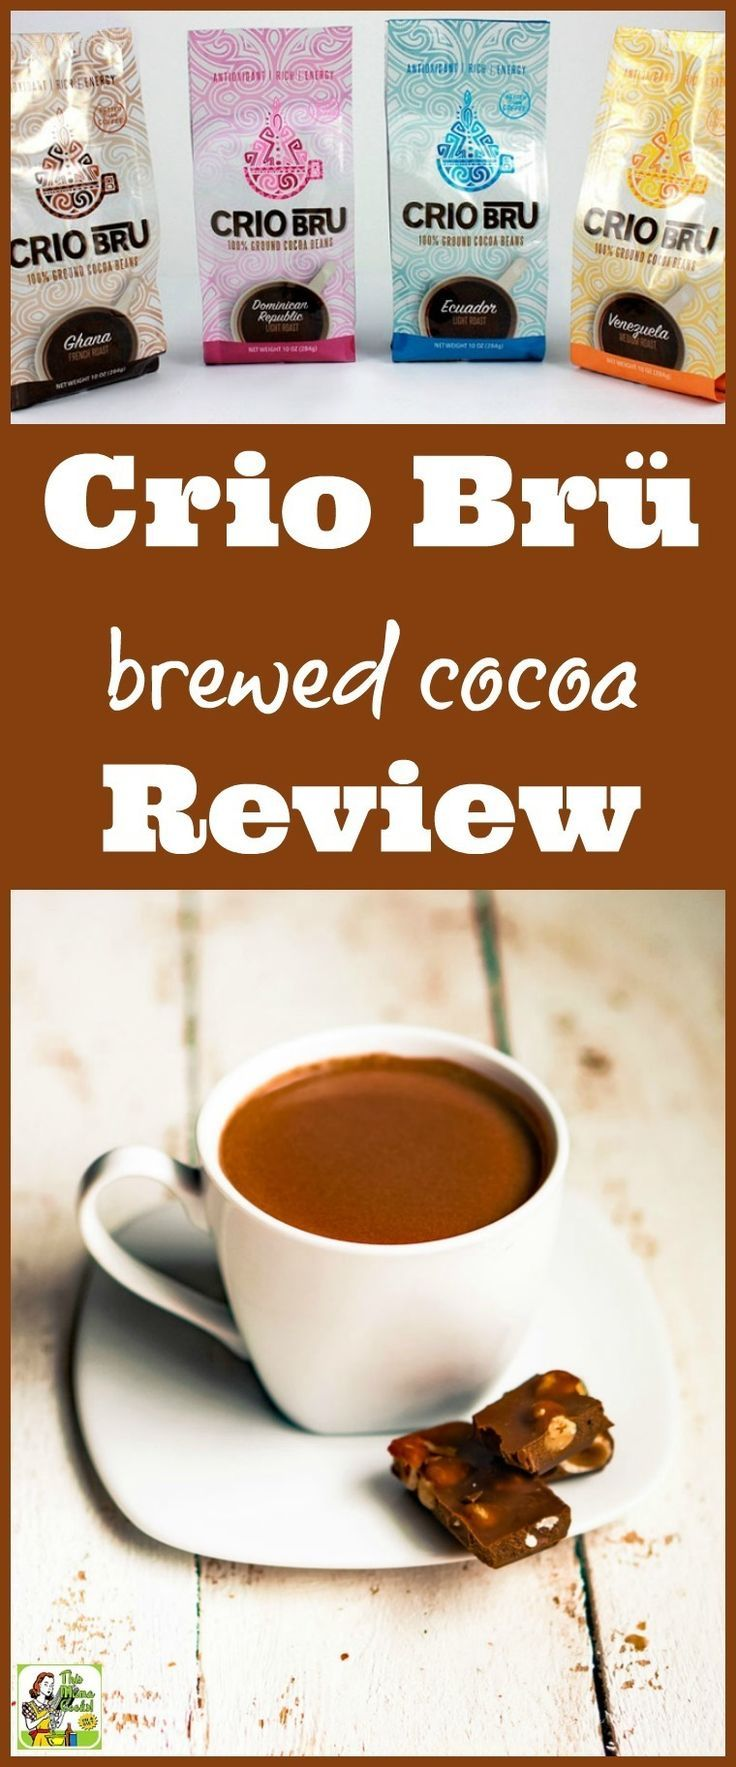 Looking For Crio Bru Reviews Read How Crio Bru Brewed Cocoa Beans Are A Healthy Alternative To Coffee Recipe Healthy Coffee Recipes Morning Recipes Breakfast